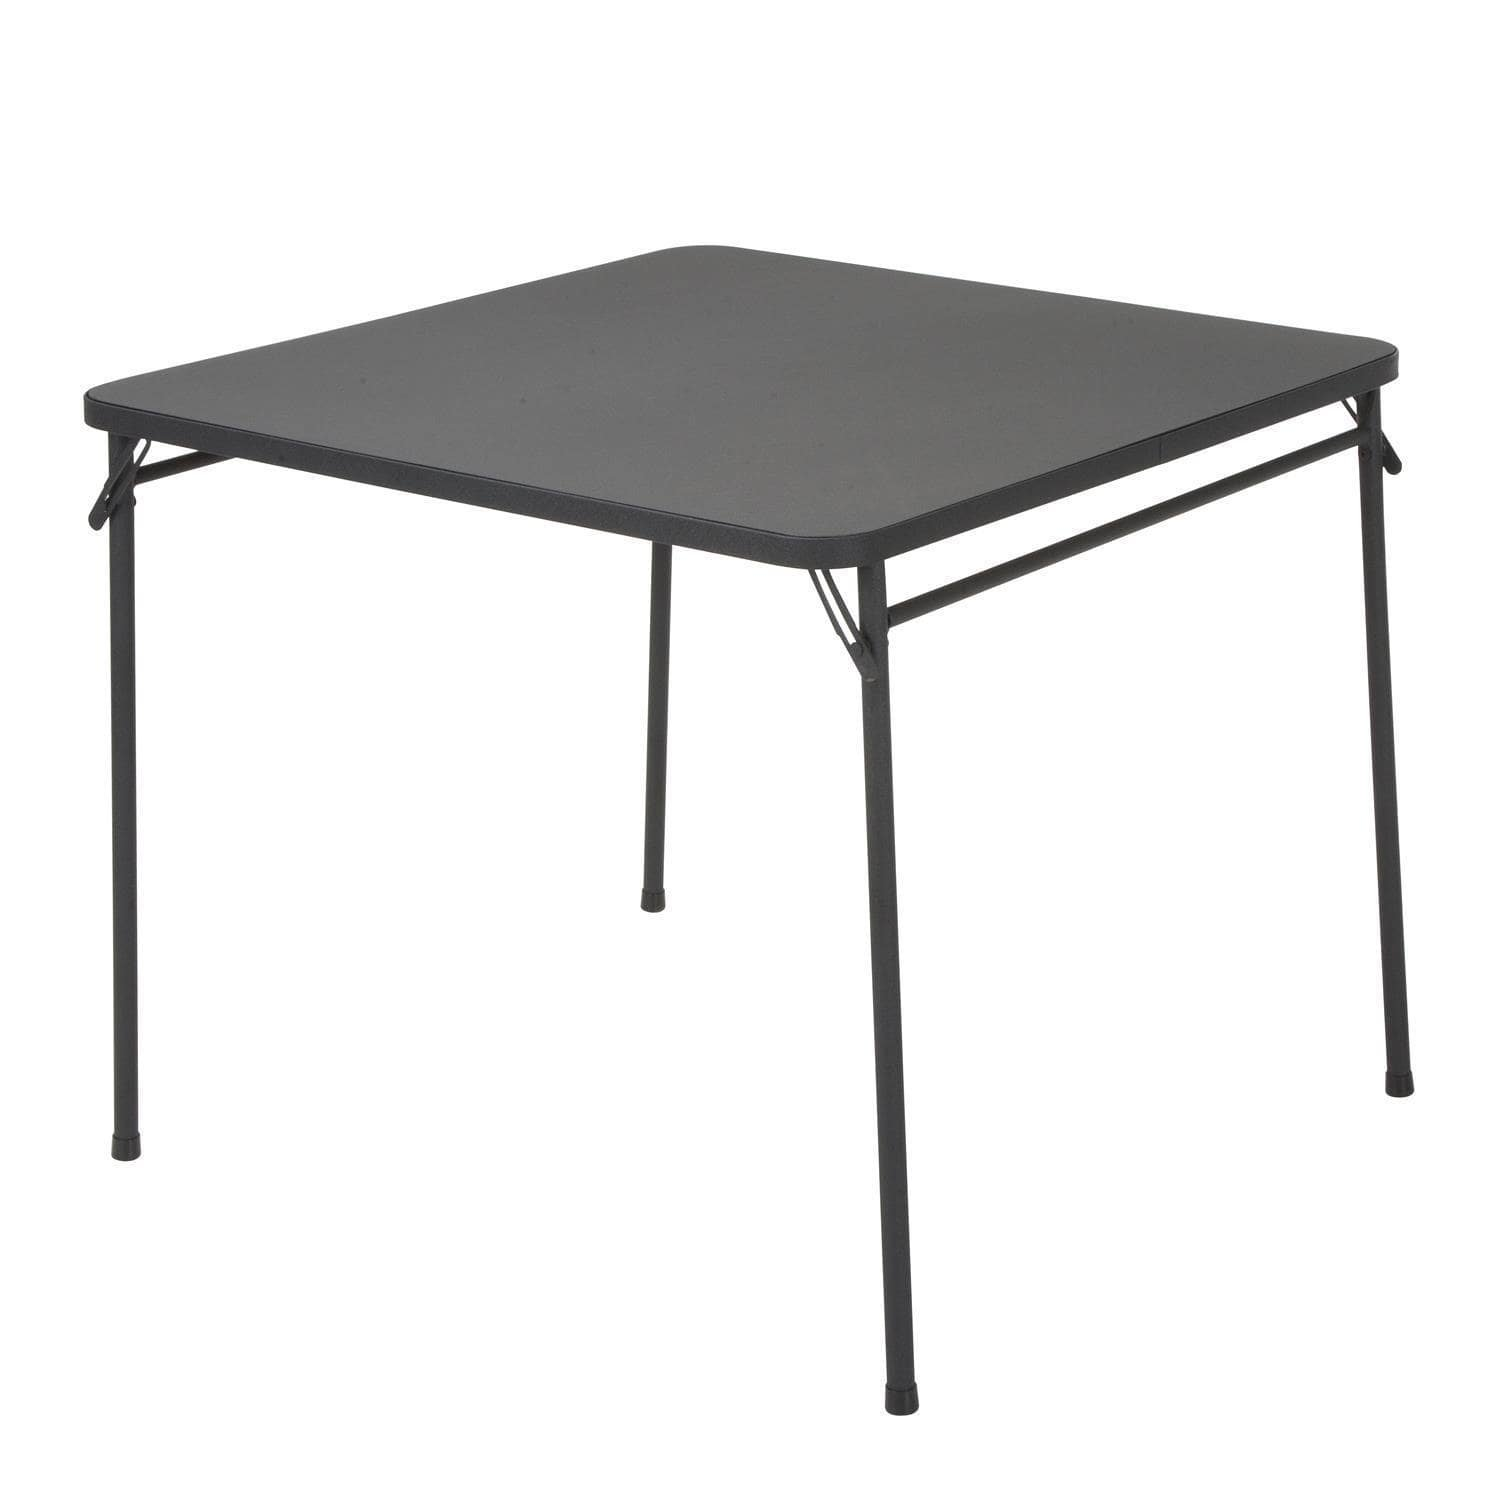 14th Mobility Outdoor/Indoor 34-inch Black Folding Table Lightweight Design, Made Steel Frame Construction Resin Tabletop + Expert Guide